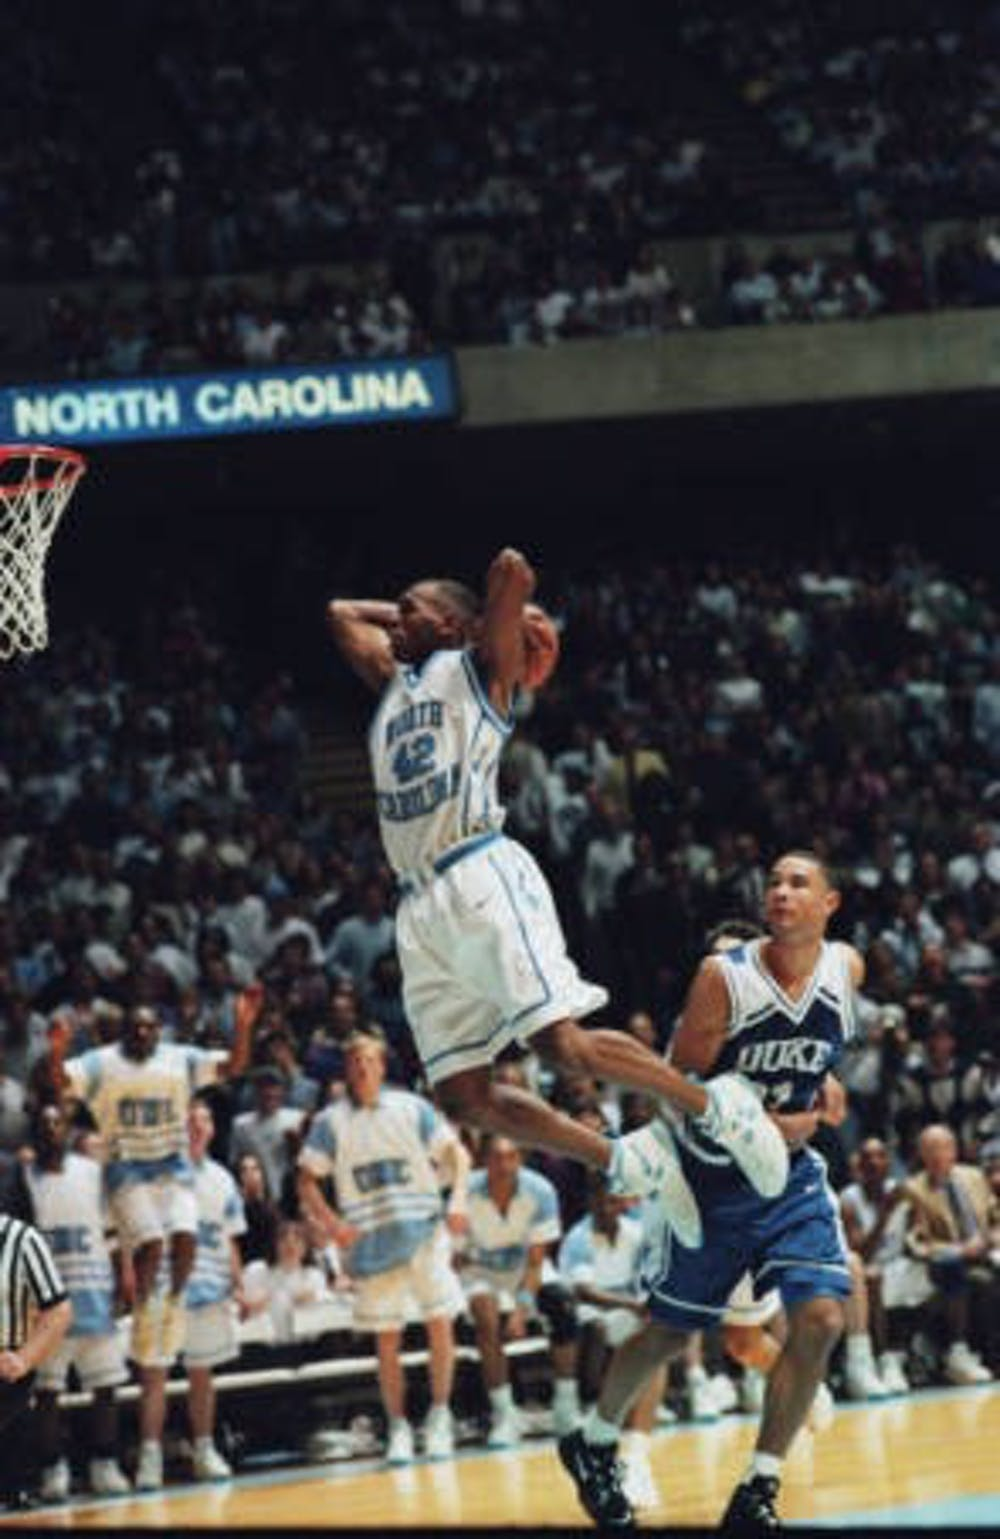 Notes from the first two rounds of our crowdsourced UNC basketball bracket